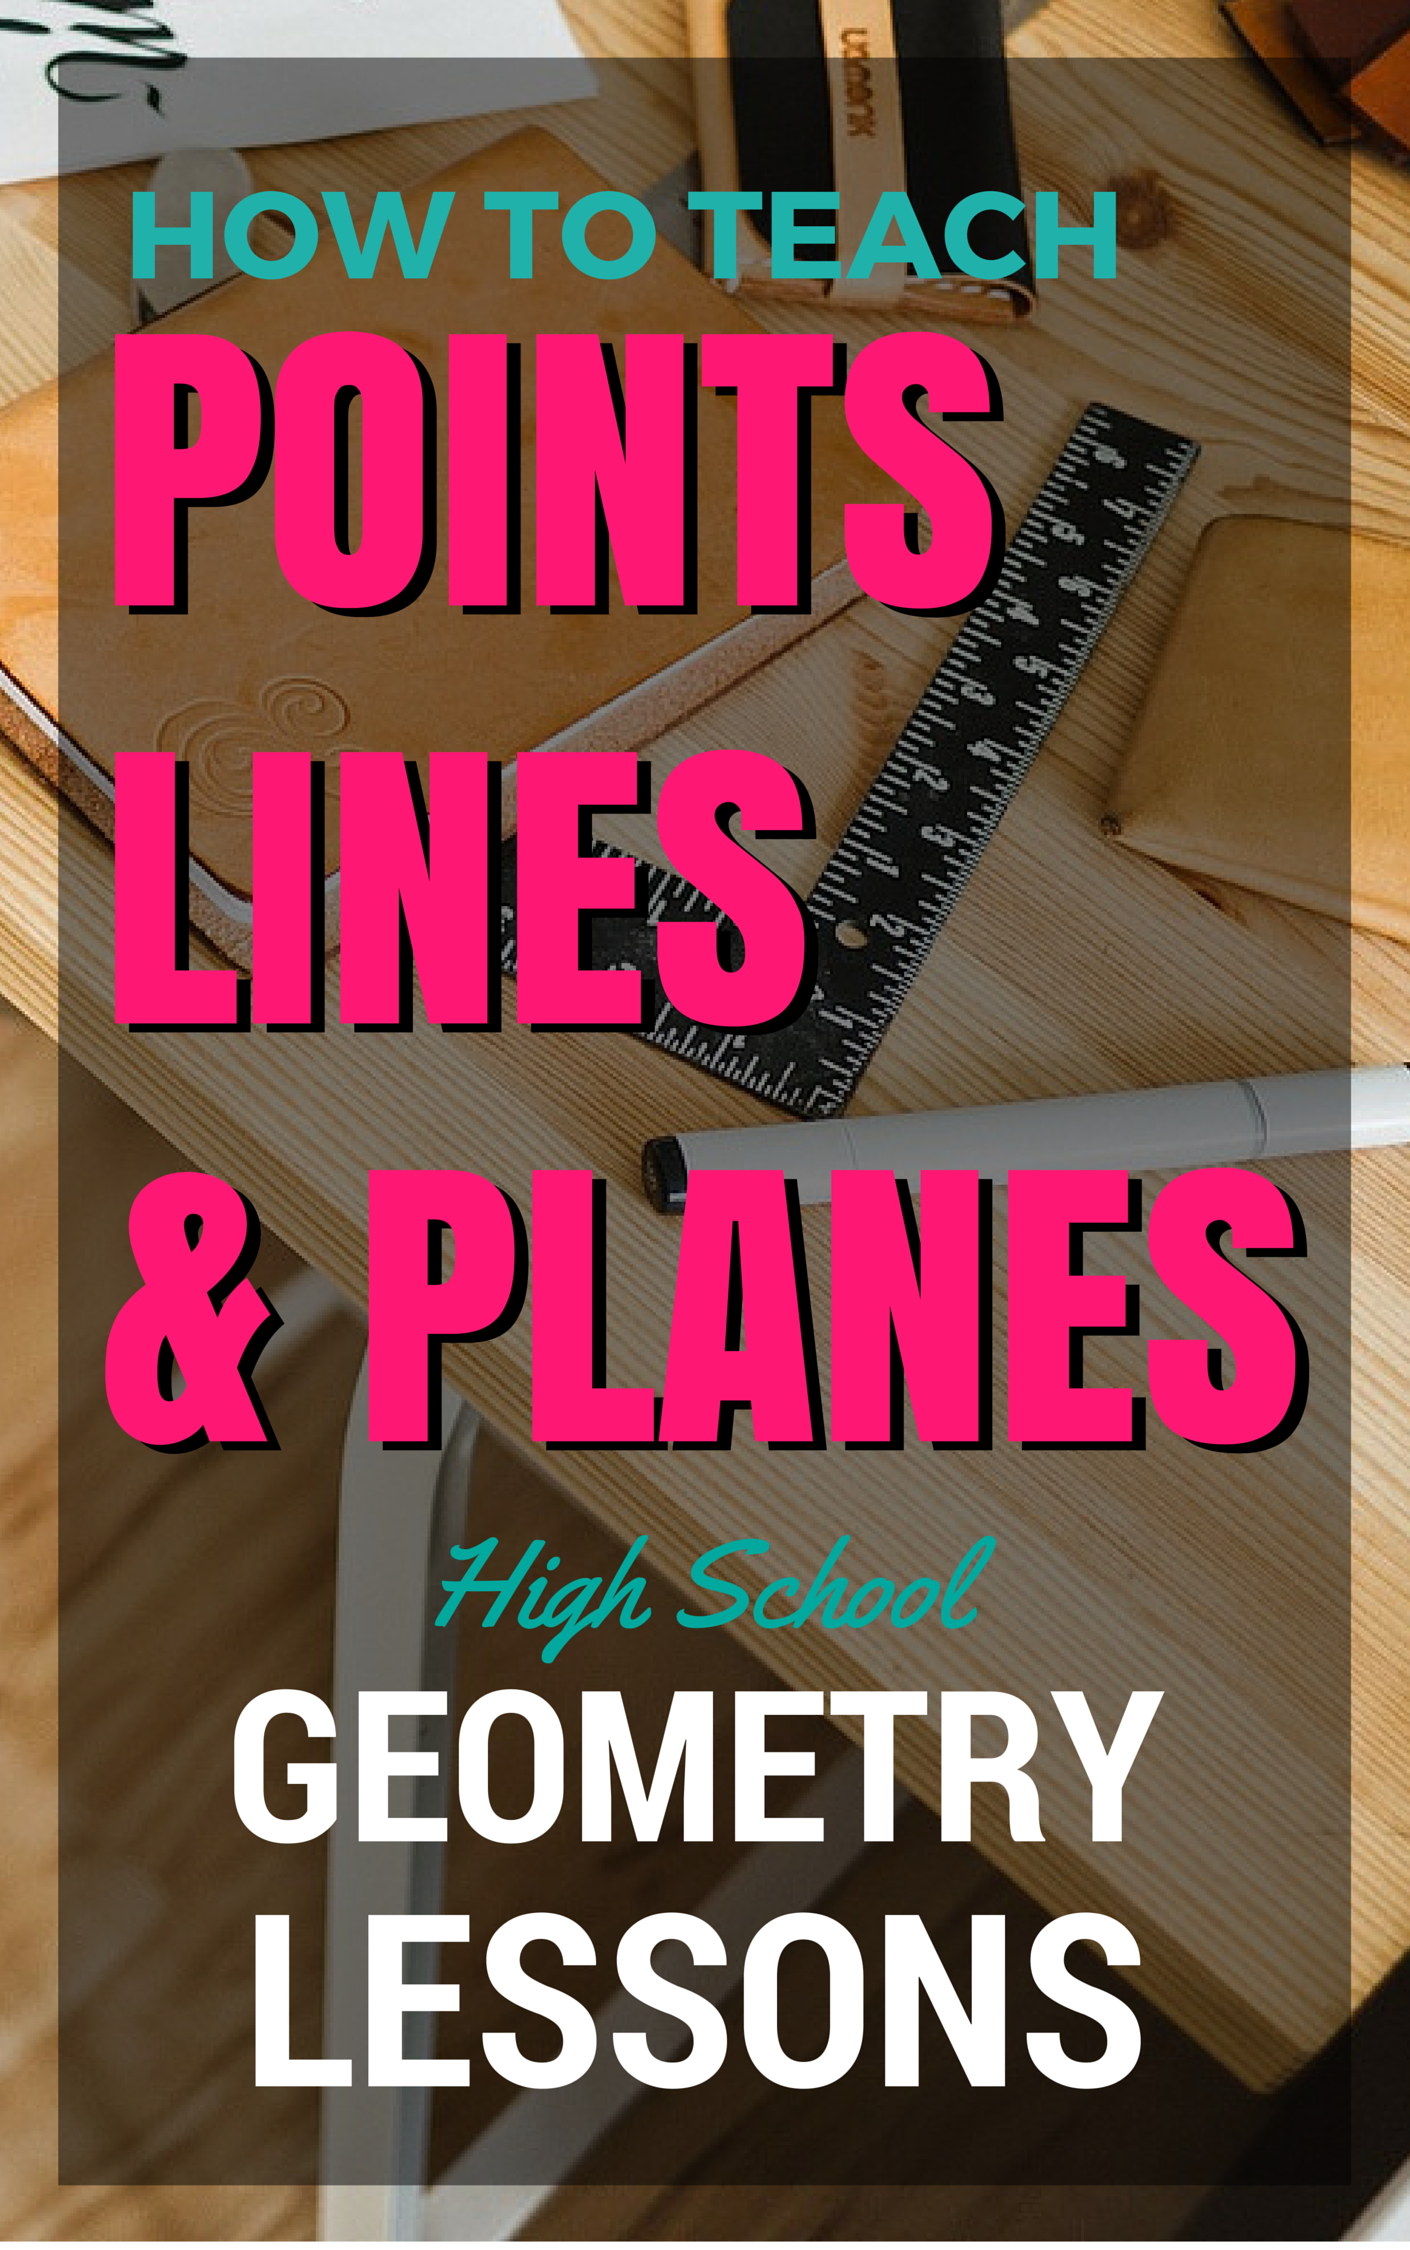 mathematics and plane geometry Just as a line is made of an infinite number of points, a plane is made of an infinite number of lines that are right next to each other a plane is flat, and it goes on infinitely in all directions a sheet of paper represents a small part of one plane but actually a sheet of paper is much thicker than a plane,.